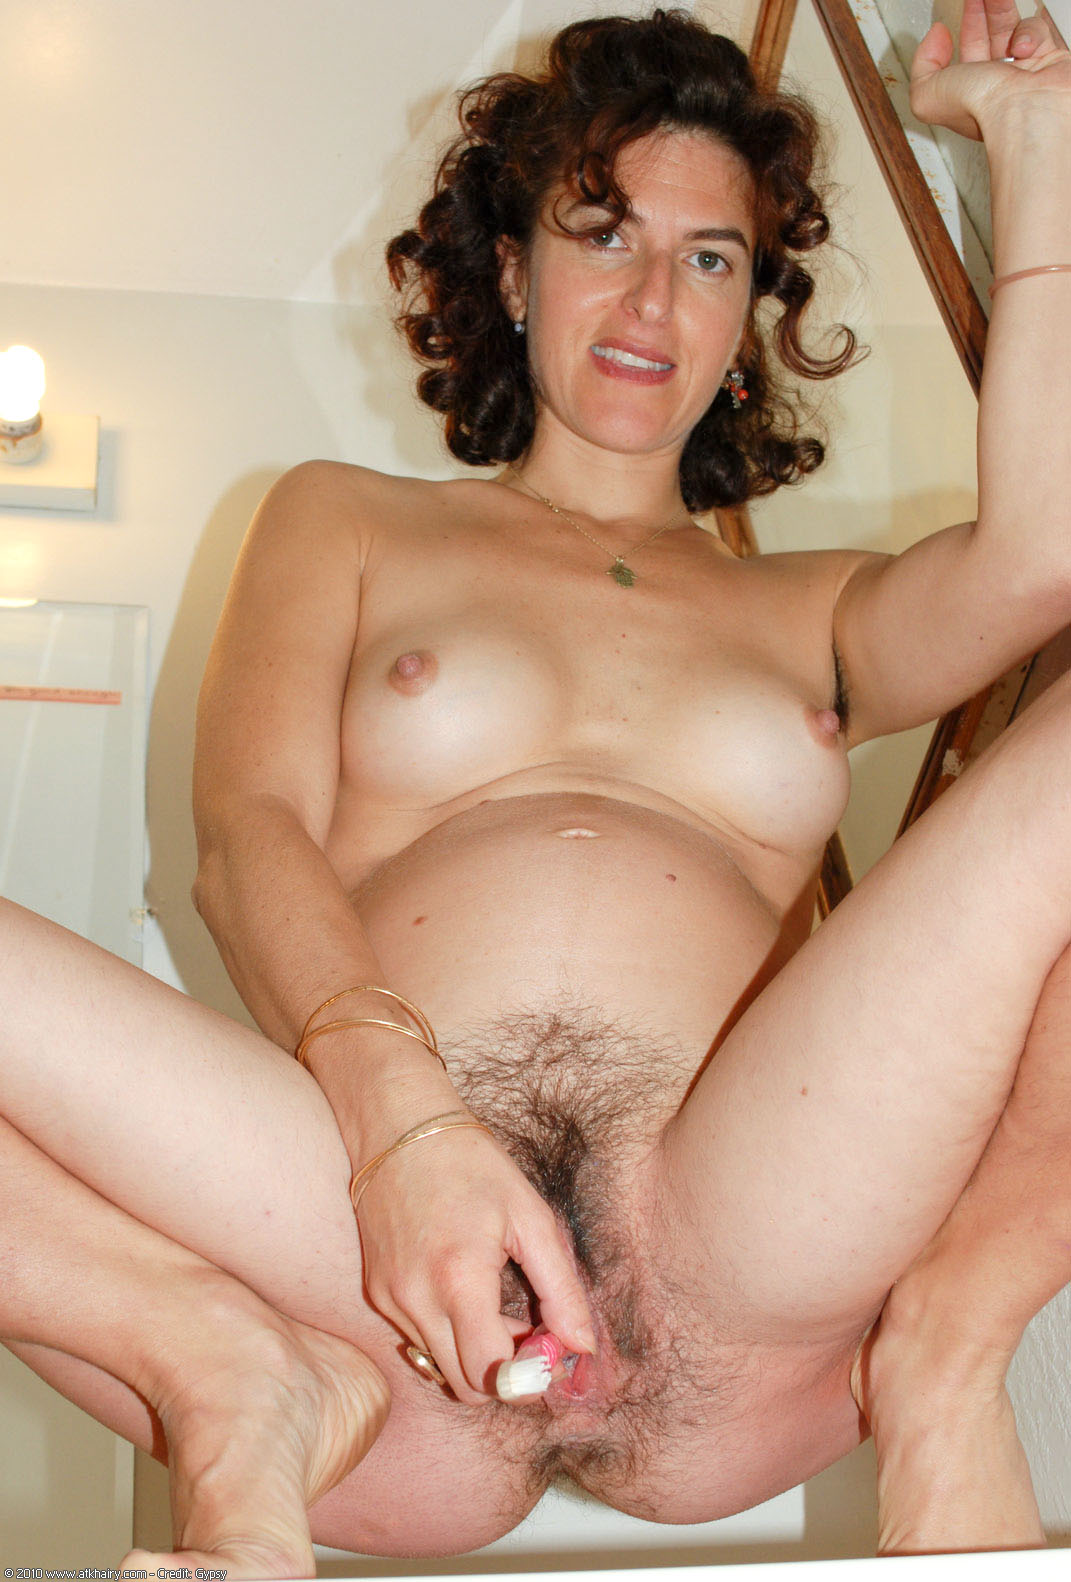 Pregnant hairy women naked something is